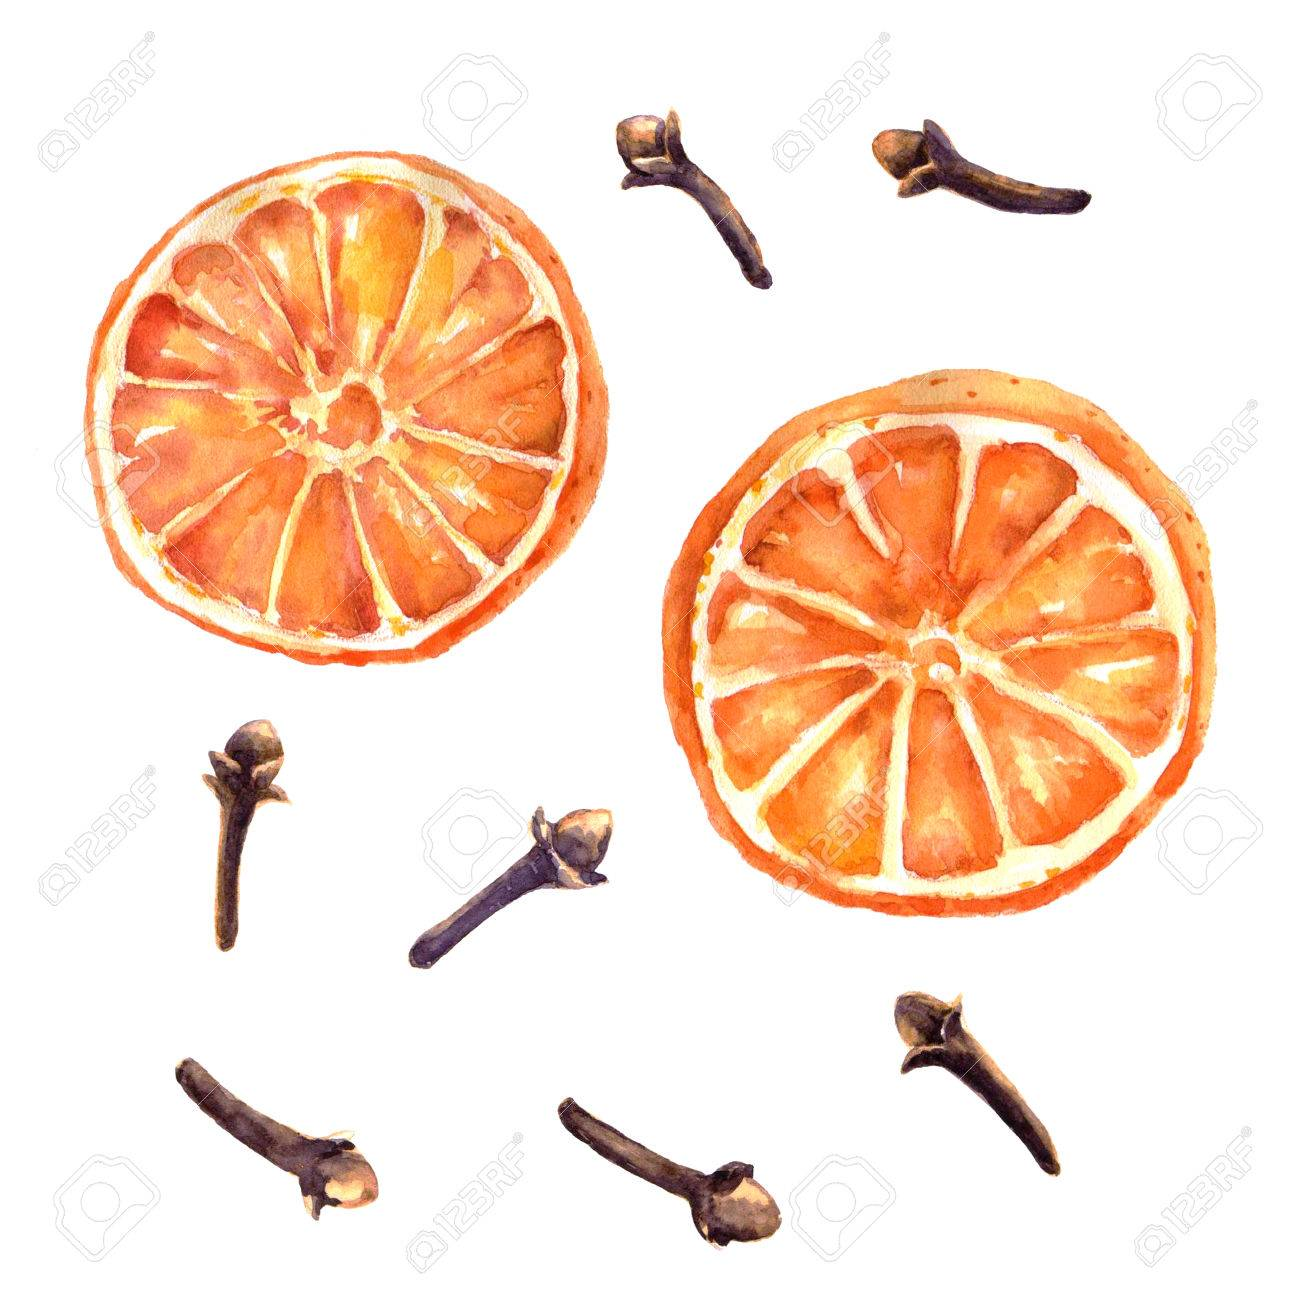 Watercolor set of christmas spice. Orange and cloves hand painted illustration on white background - 67674007